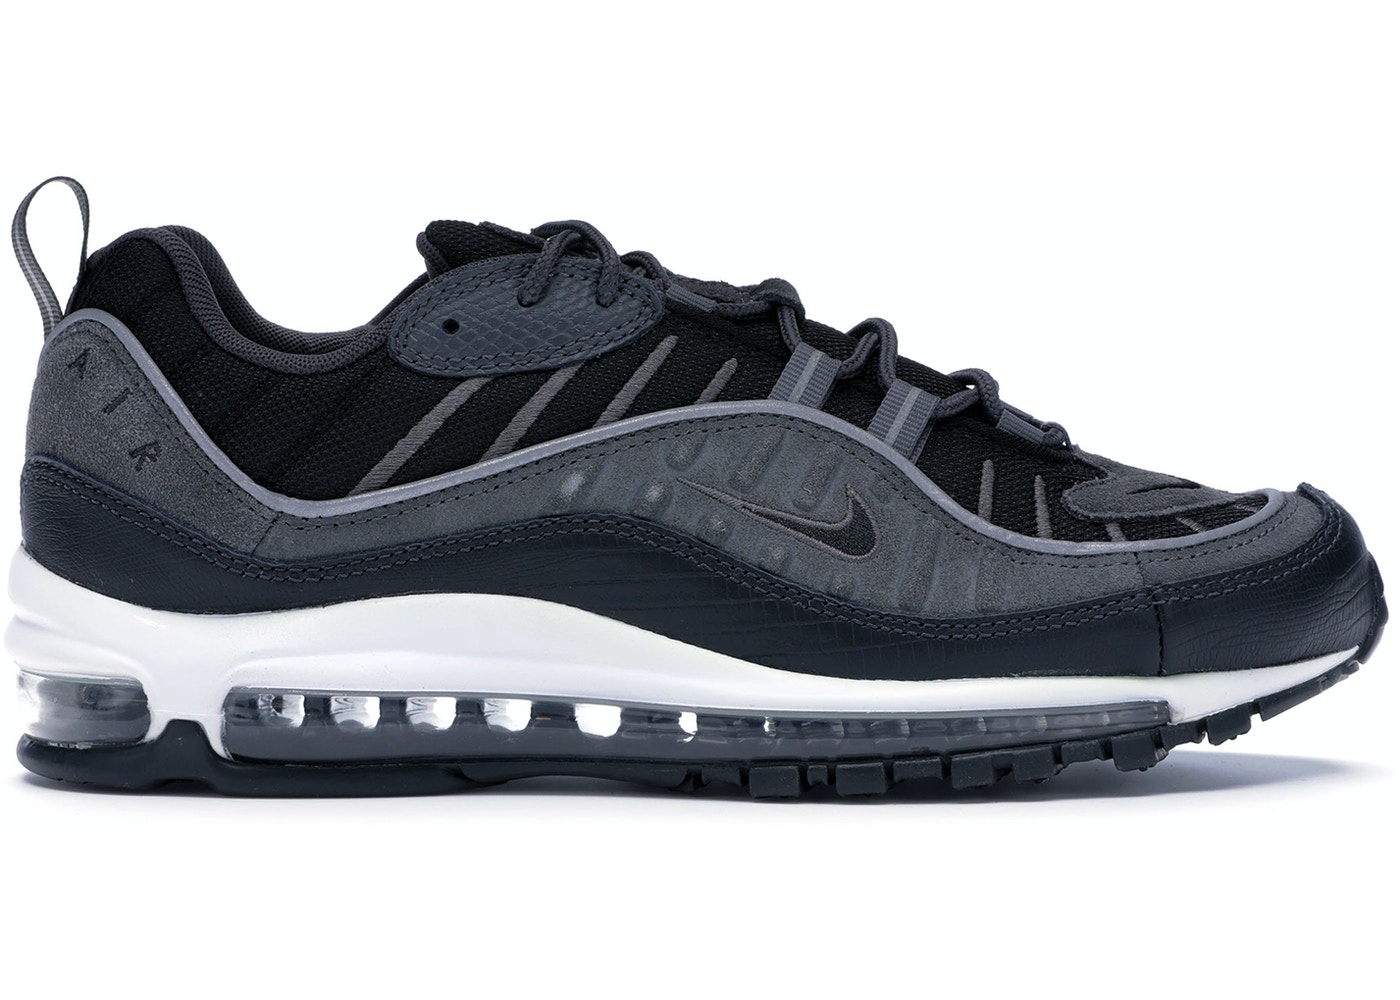 the latest 16422 a62c8 Air Max 98 Black Anthracite - AO9380-001